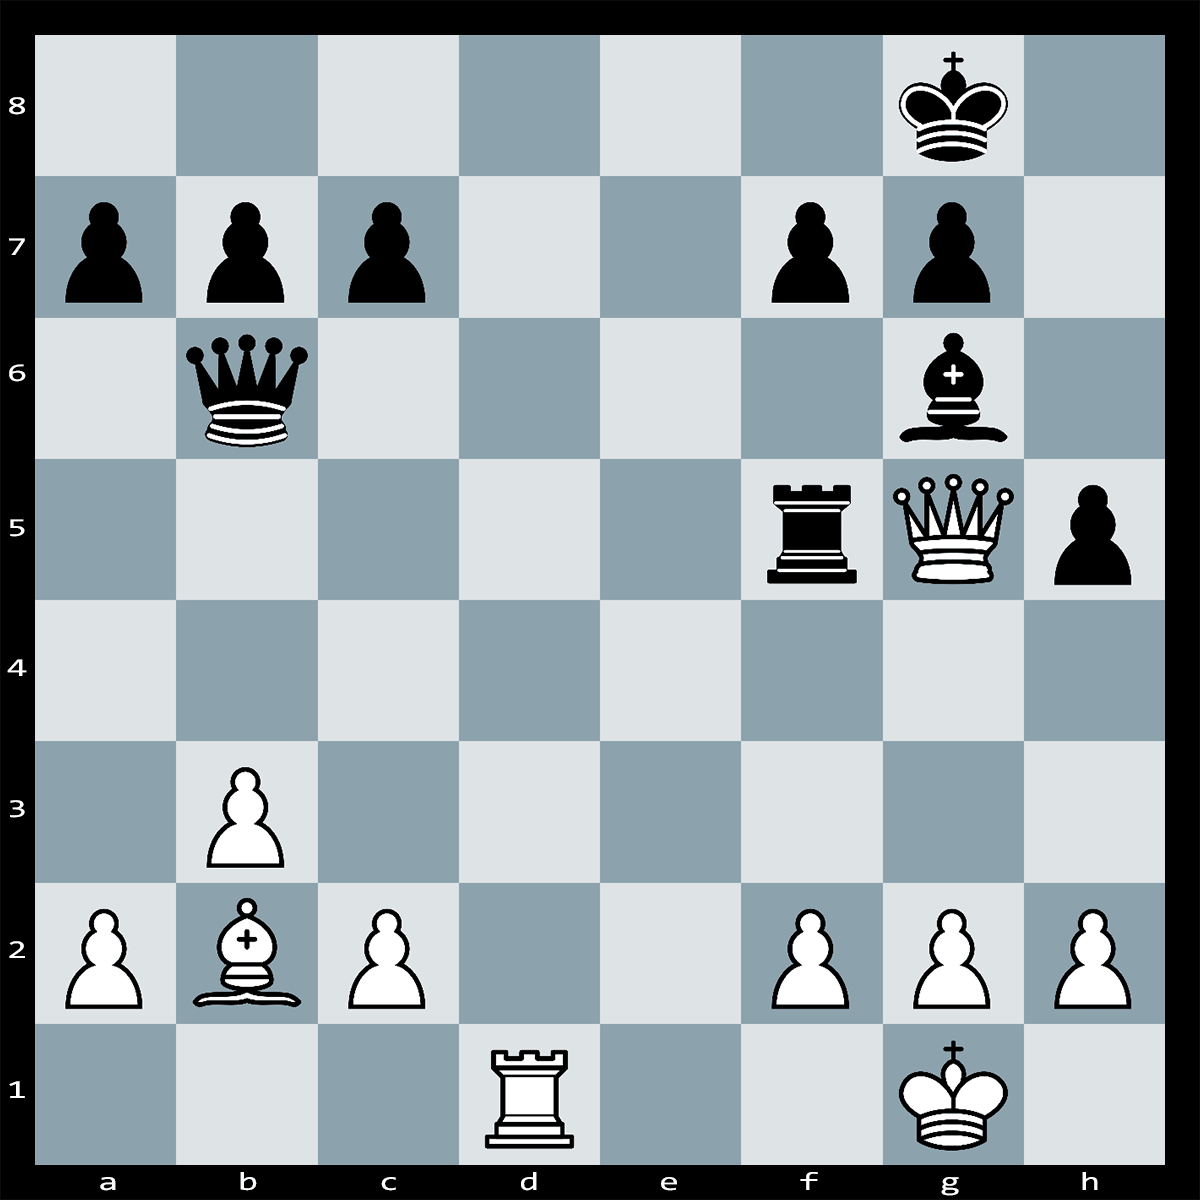 White to Play Mate in 4 Moves - chess puzzle #18